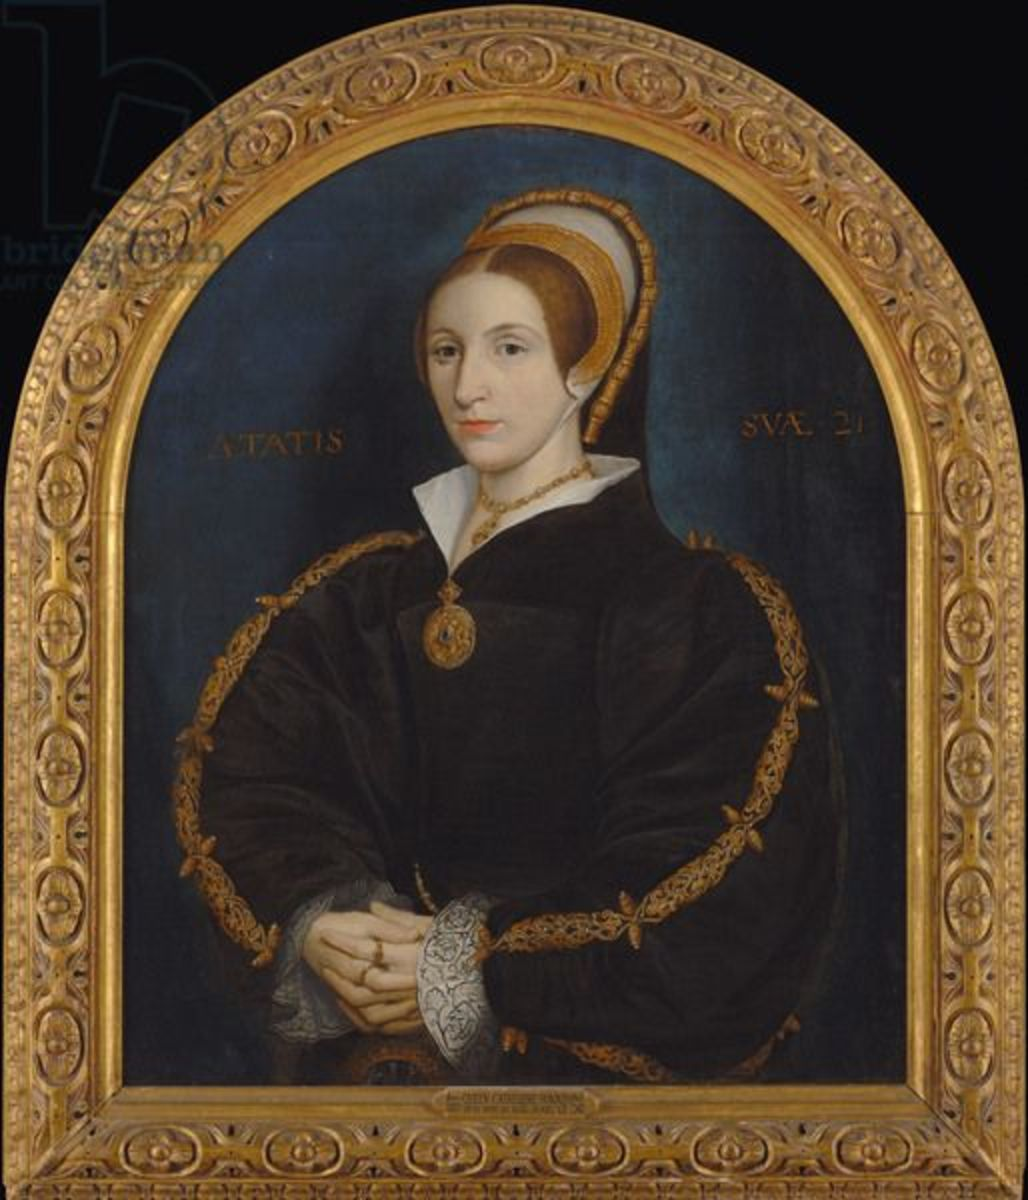 Katherine Howard of the Legitimate Lancastrian bloodline, victim or villain?